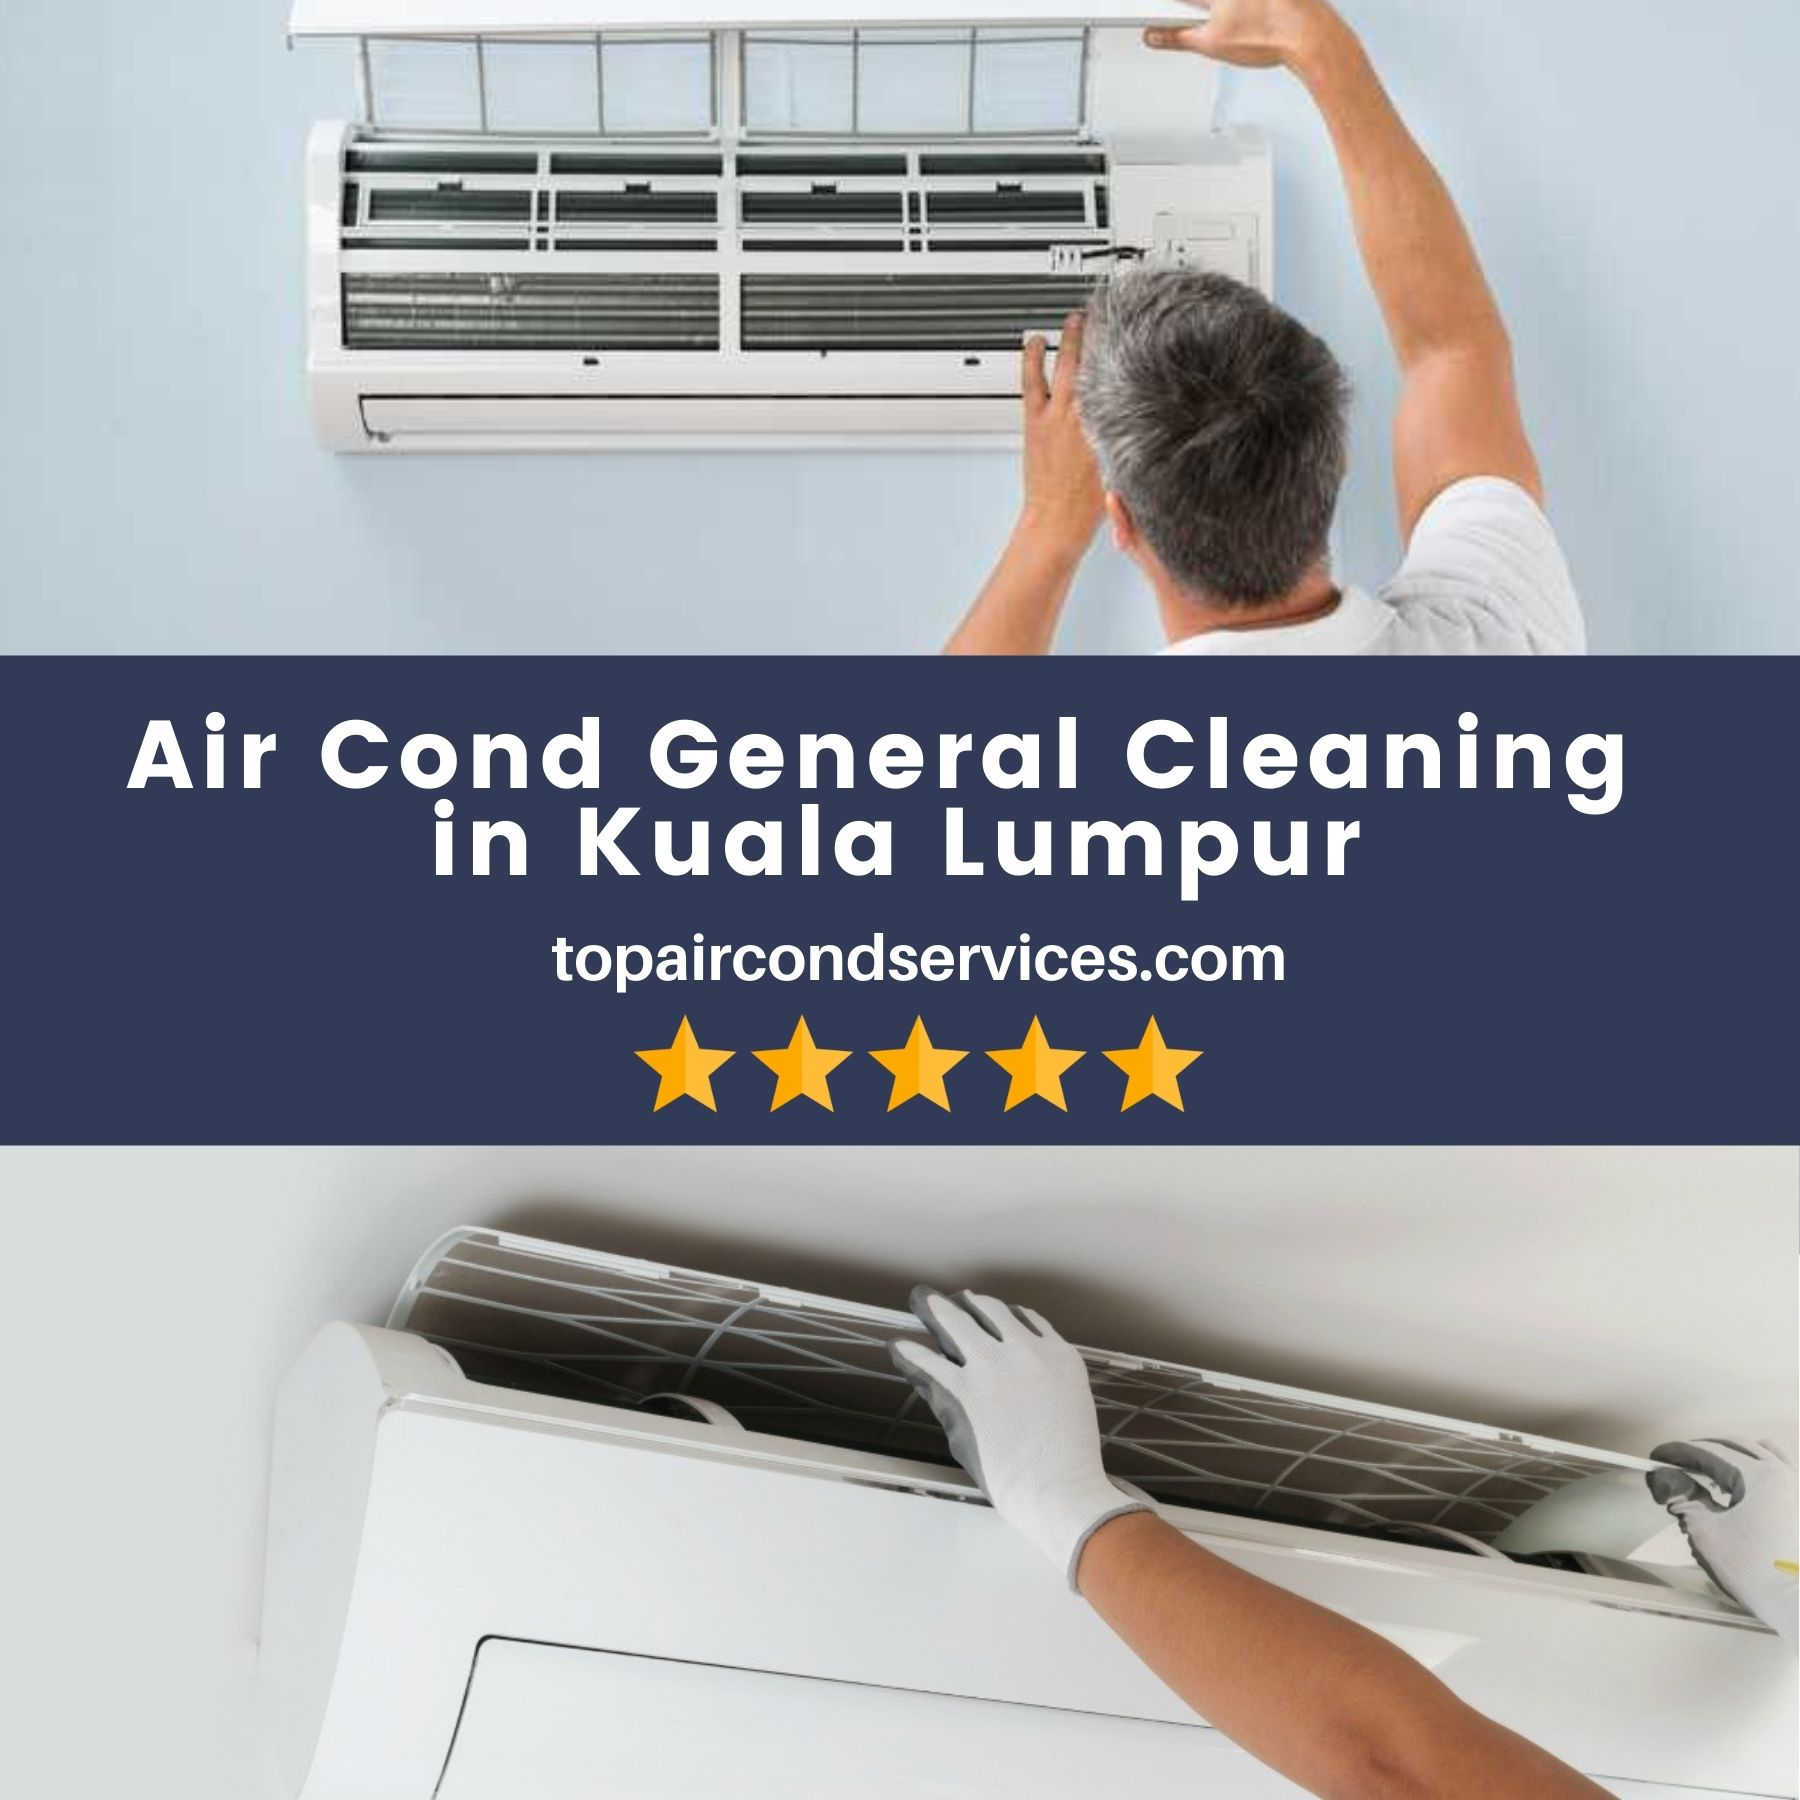 AirCond General Cleaning KL